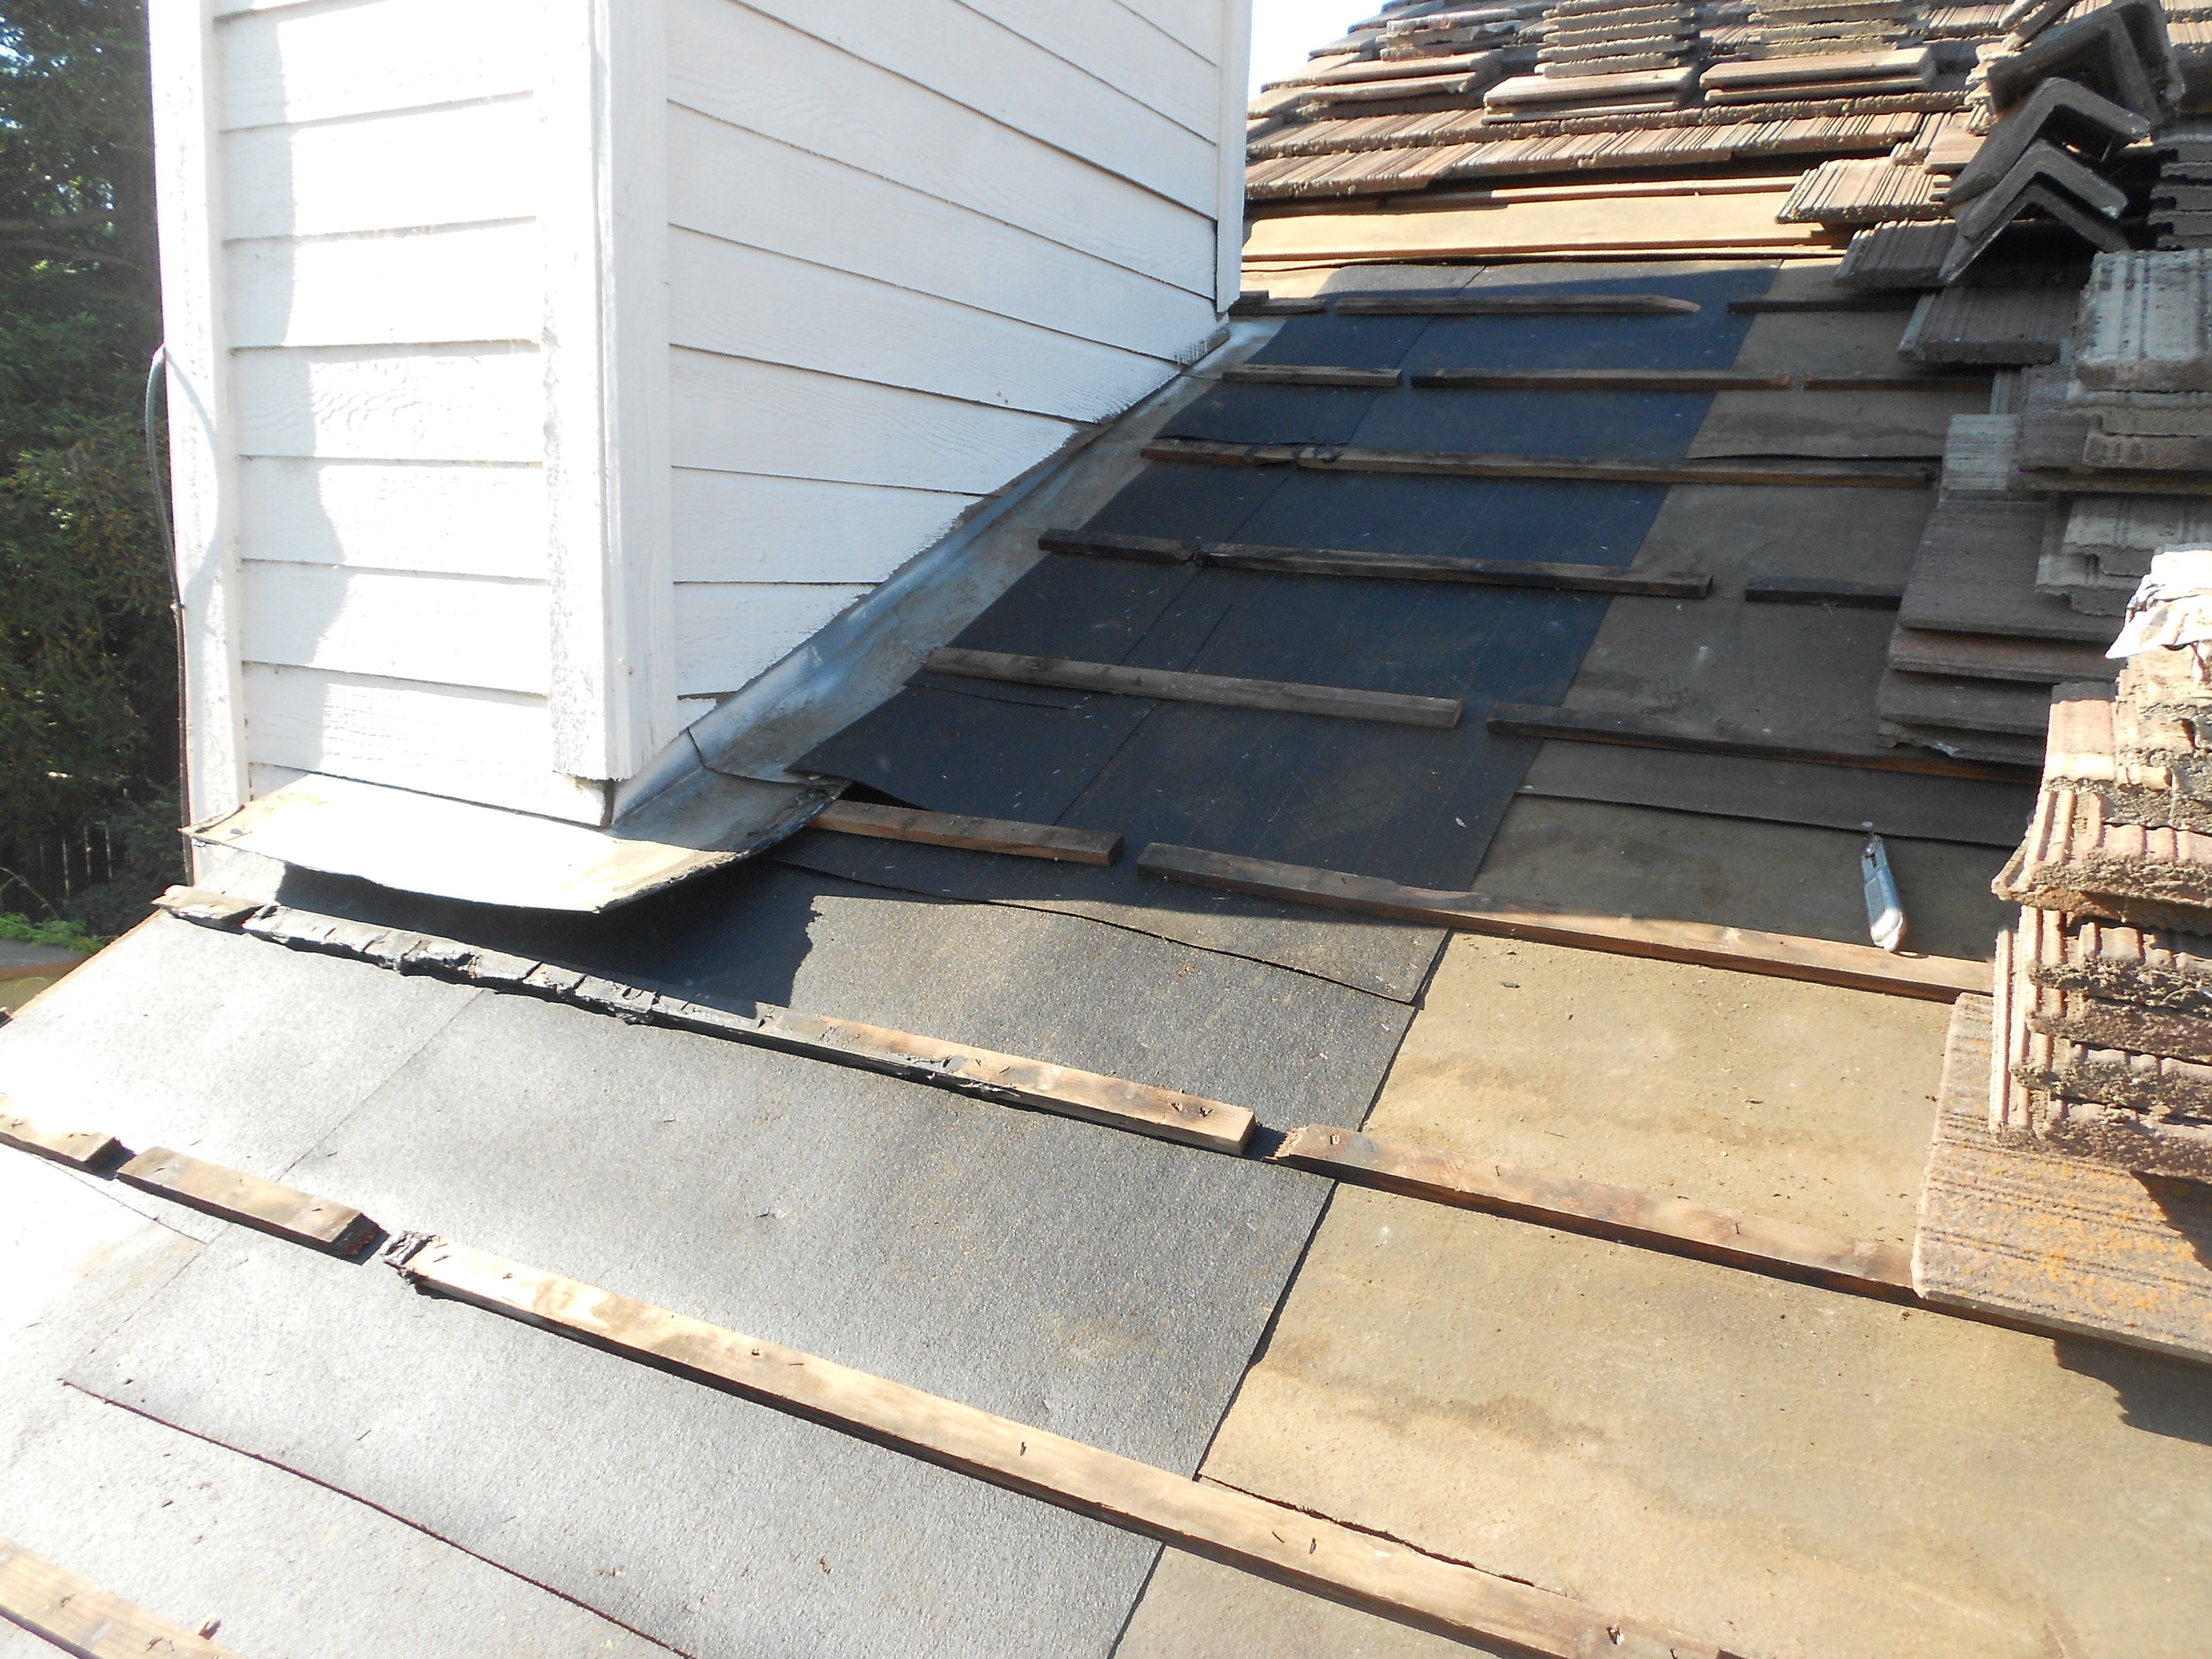 Roof Repair by Ved's Roofing of Yuba City, CA